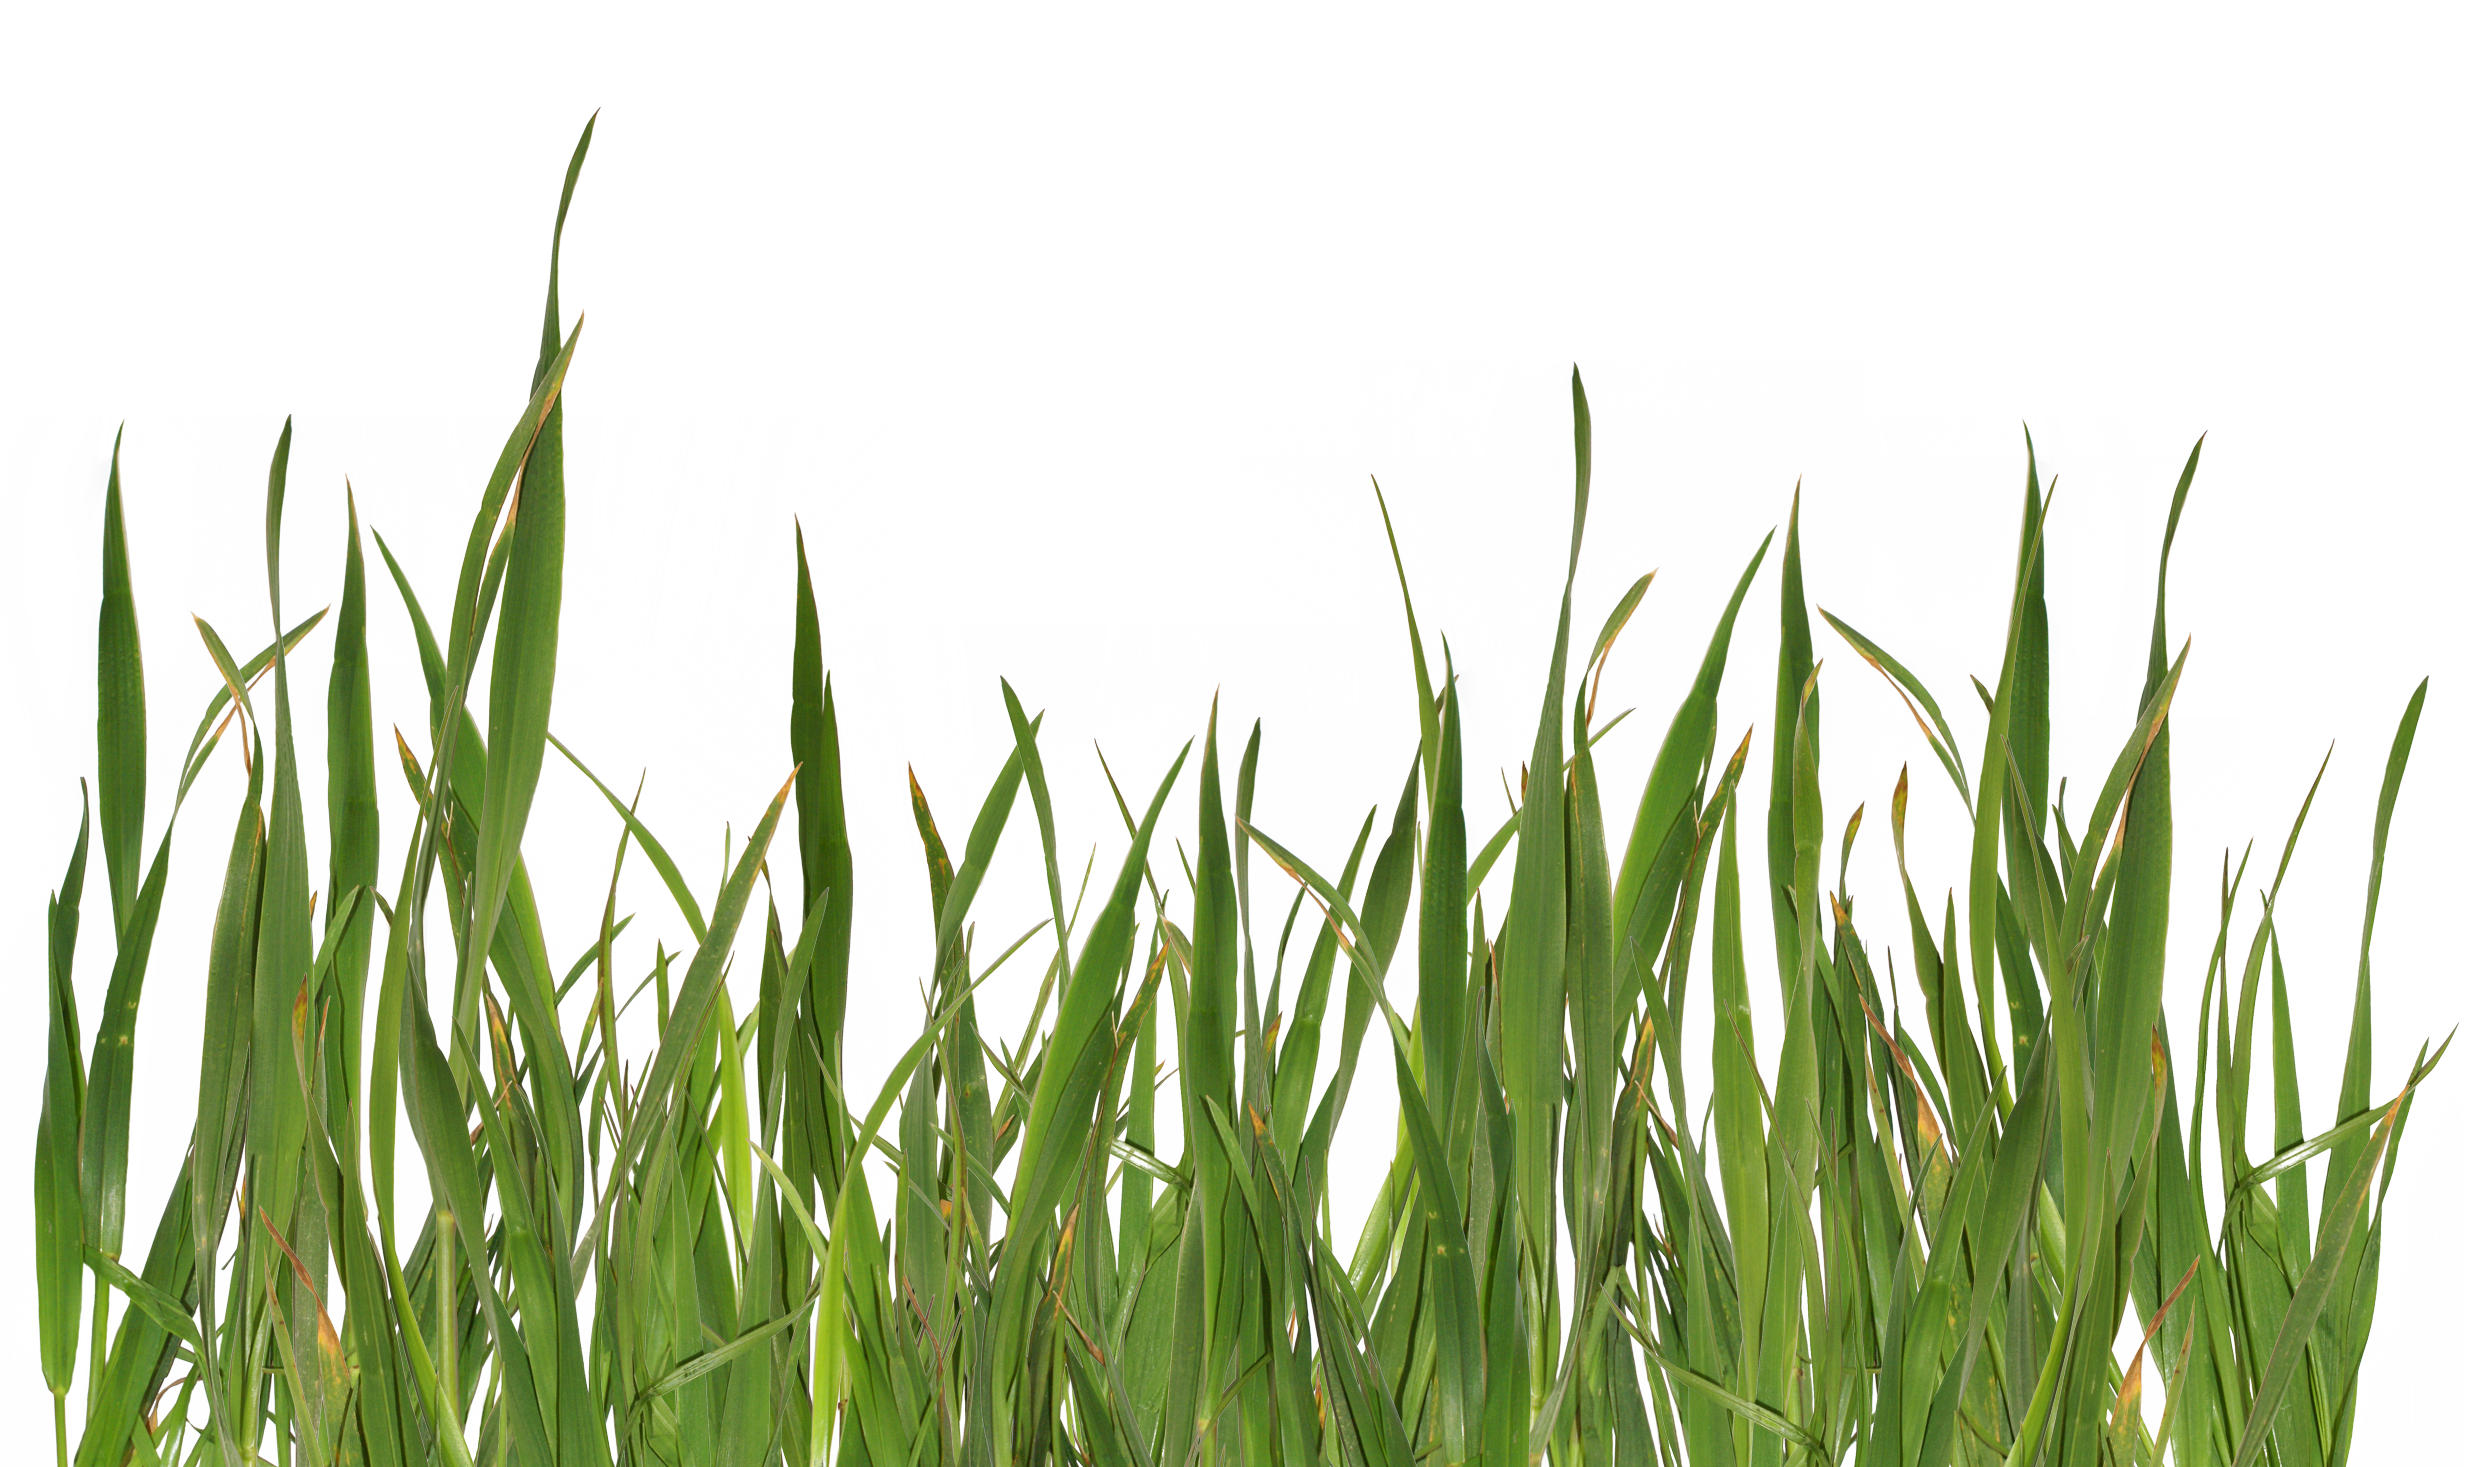 Outdoors clipart swamp grass. Flower meaning submission pygmalion